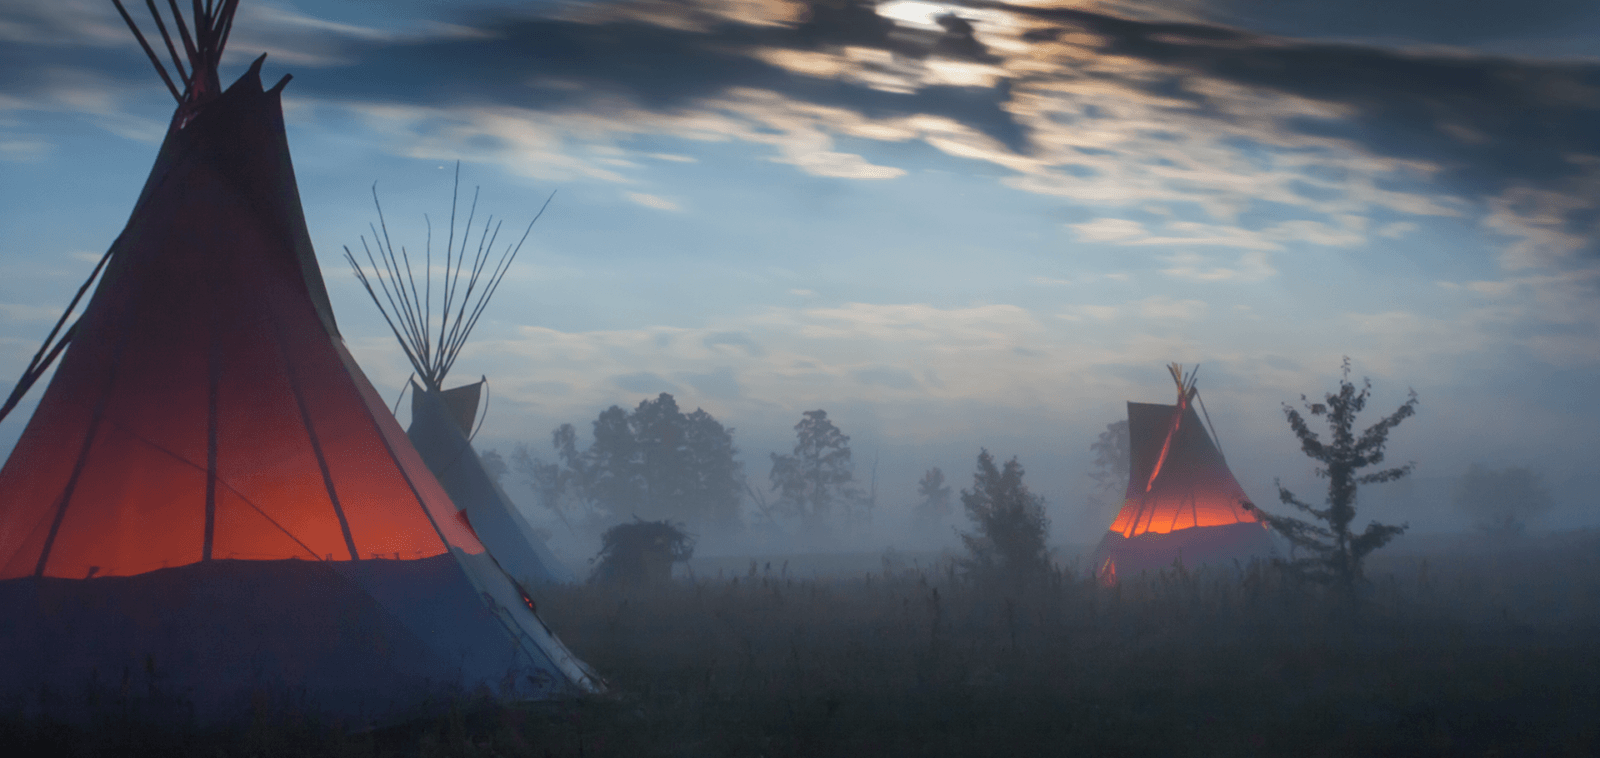 Photo of teepees